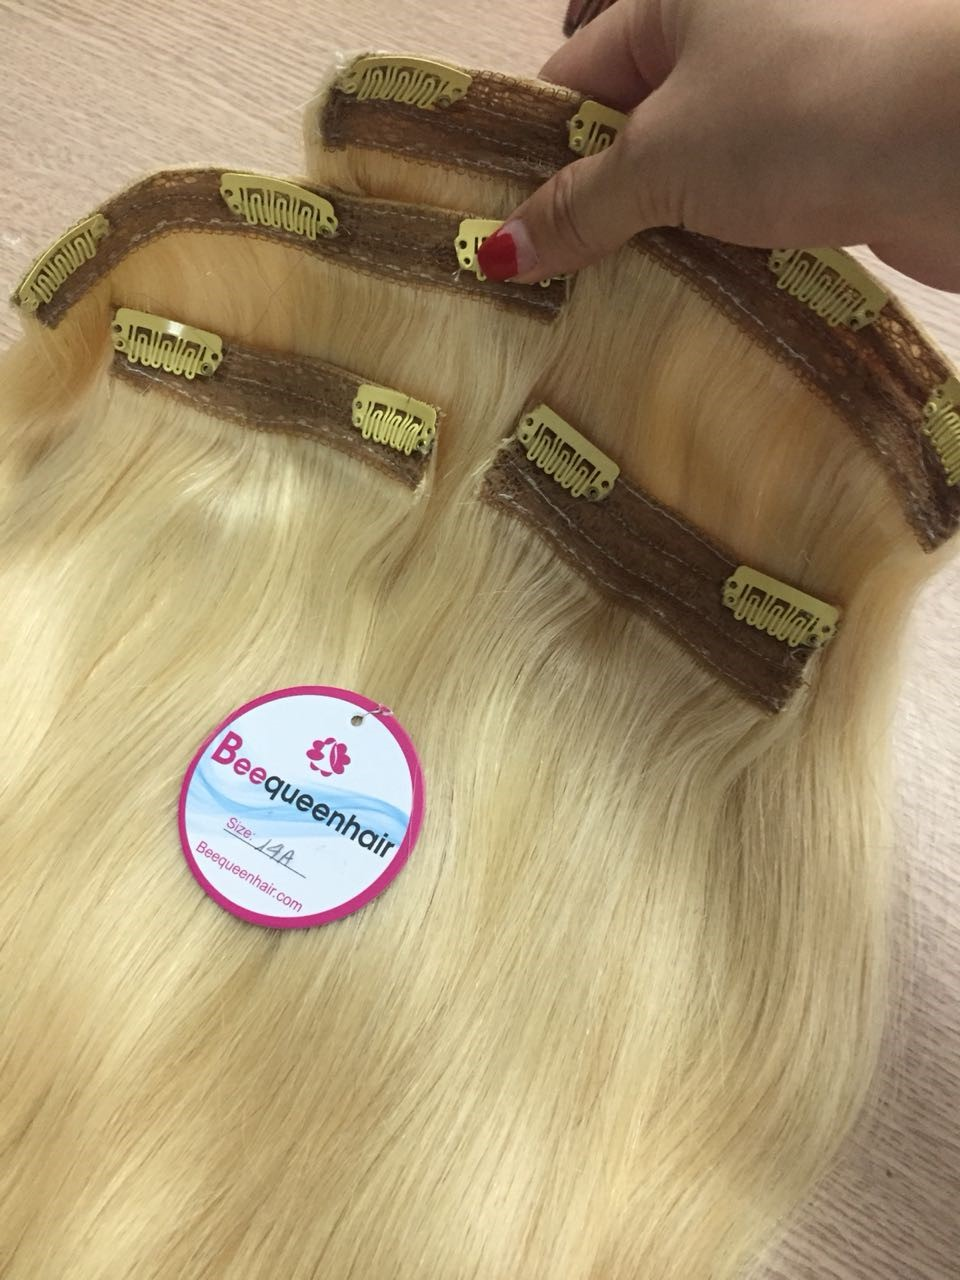 14 Inch Hair Extensions Of Beequeenhair